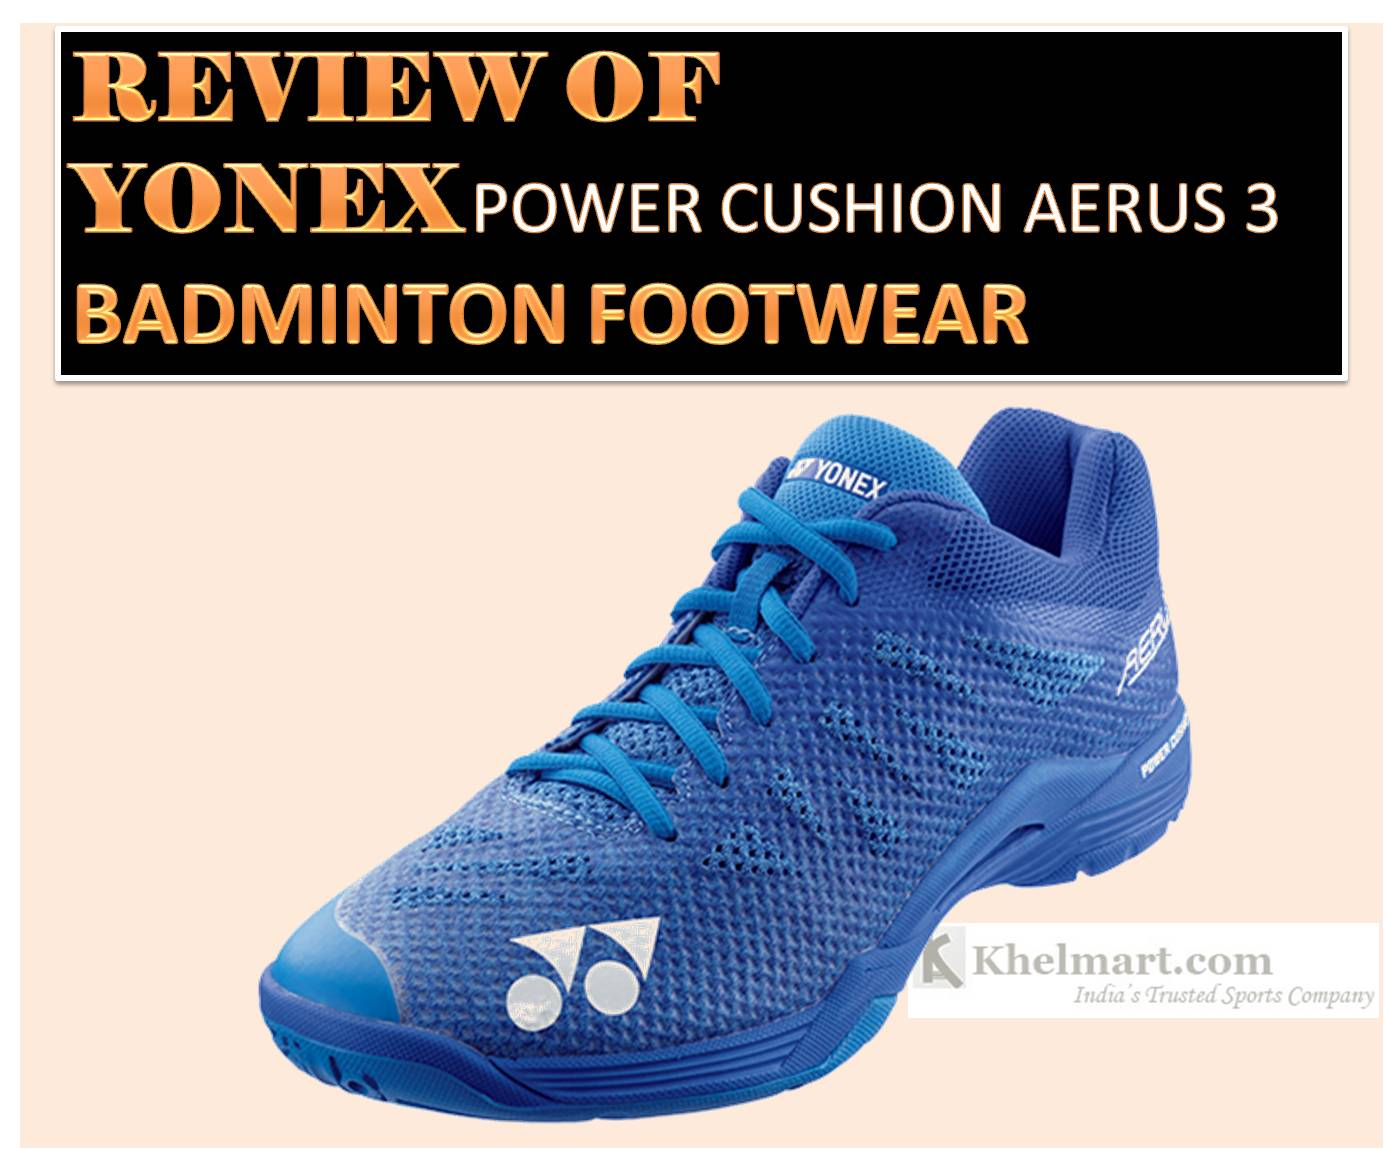 REVIEW_OF_YONEX_POWER_CUSHION_AERUS3_BADMINTON_SHOES.jpg